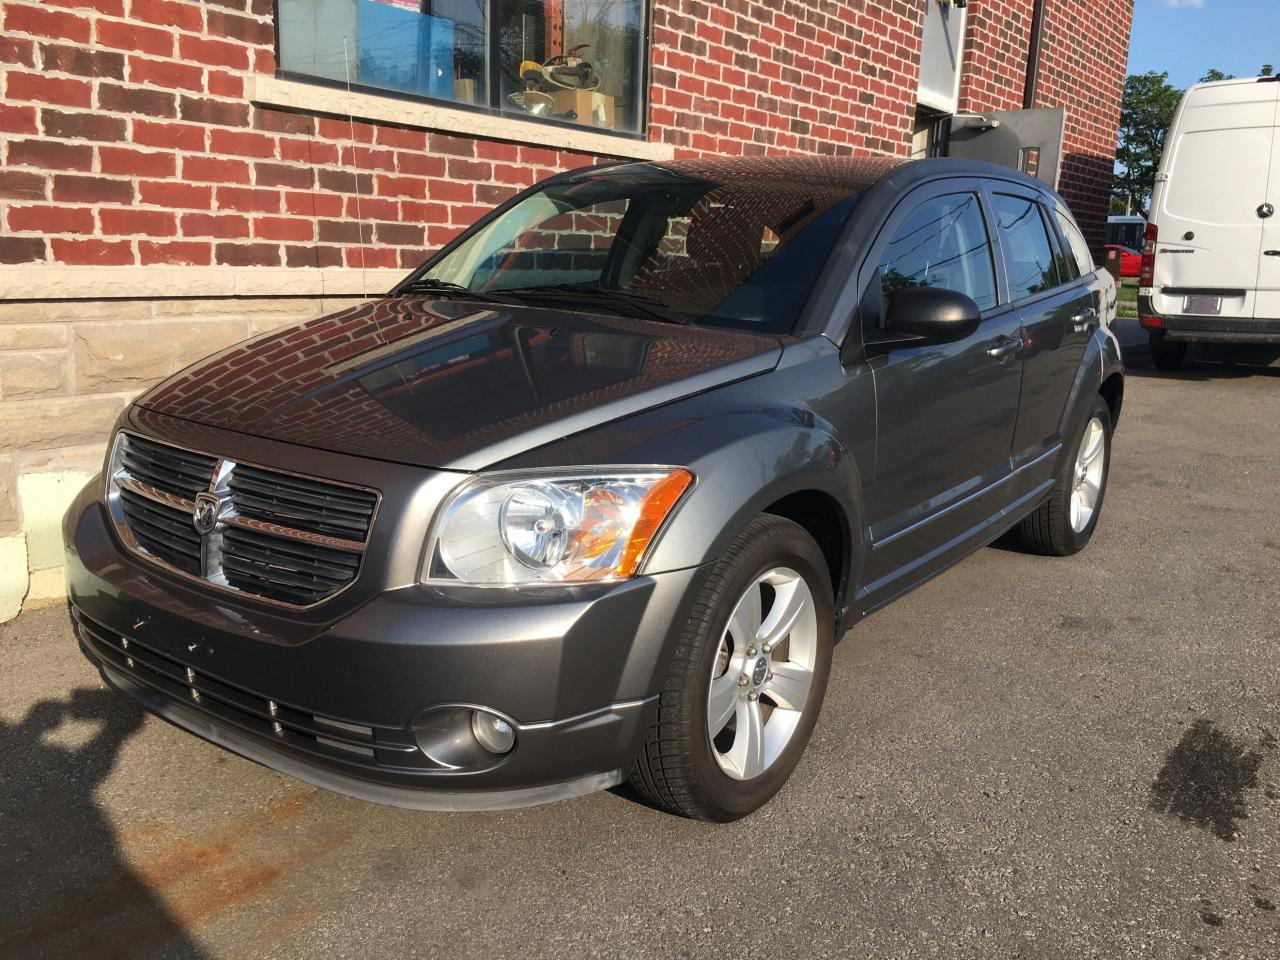 Used 2012 Dodge Caliber SXT for Sale in Rexdale, Ontario